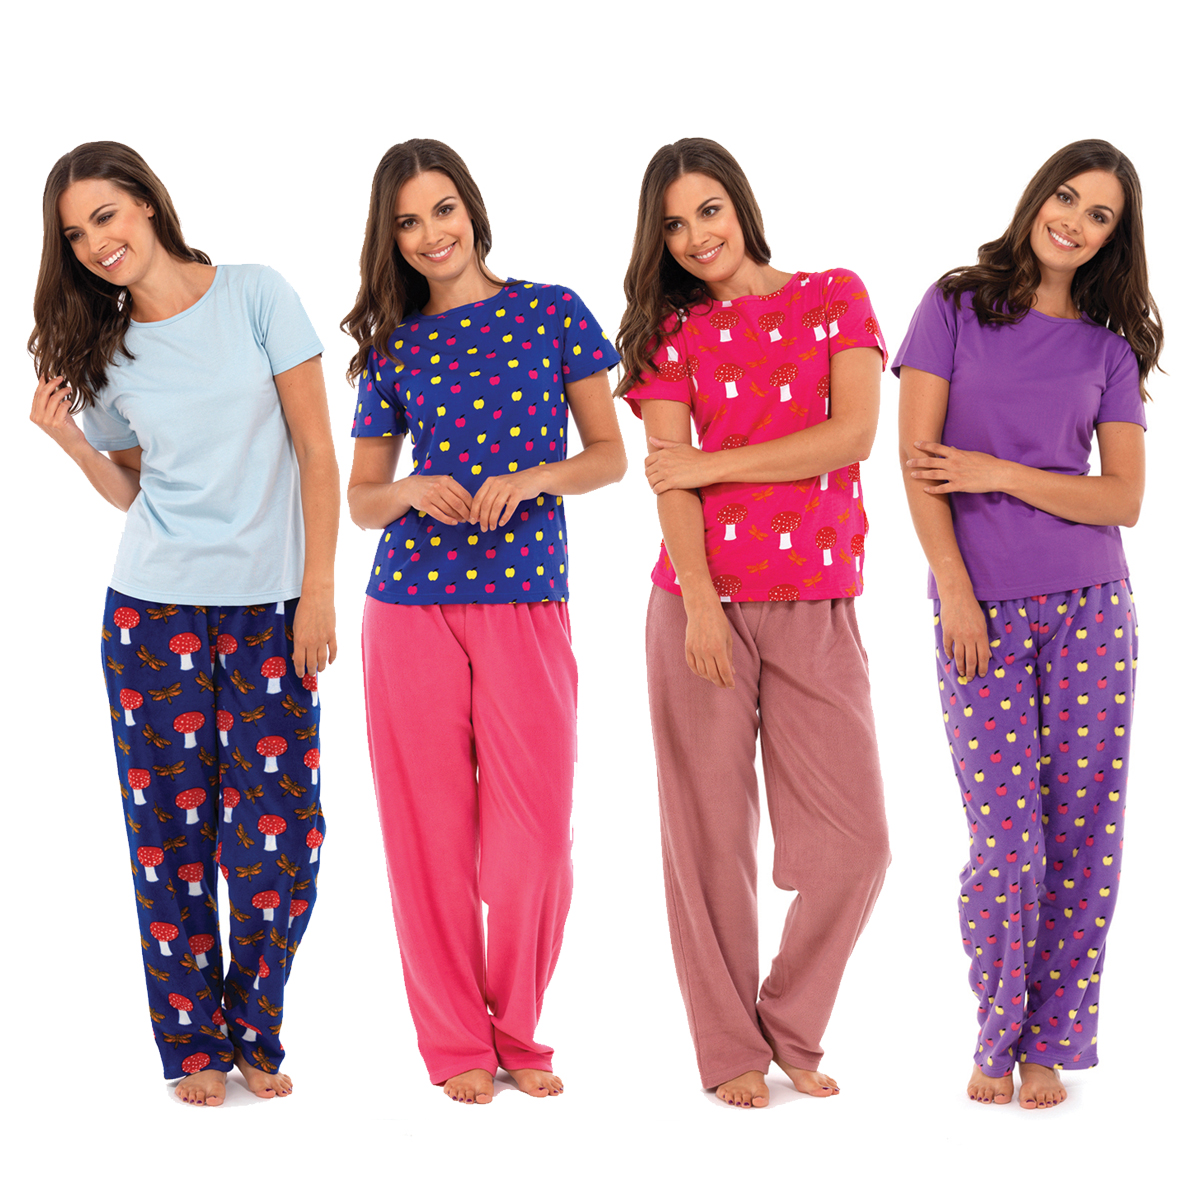 ladies night dress pyjamas - photo #19